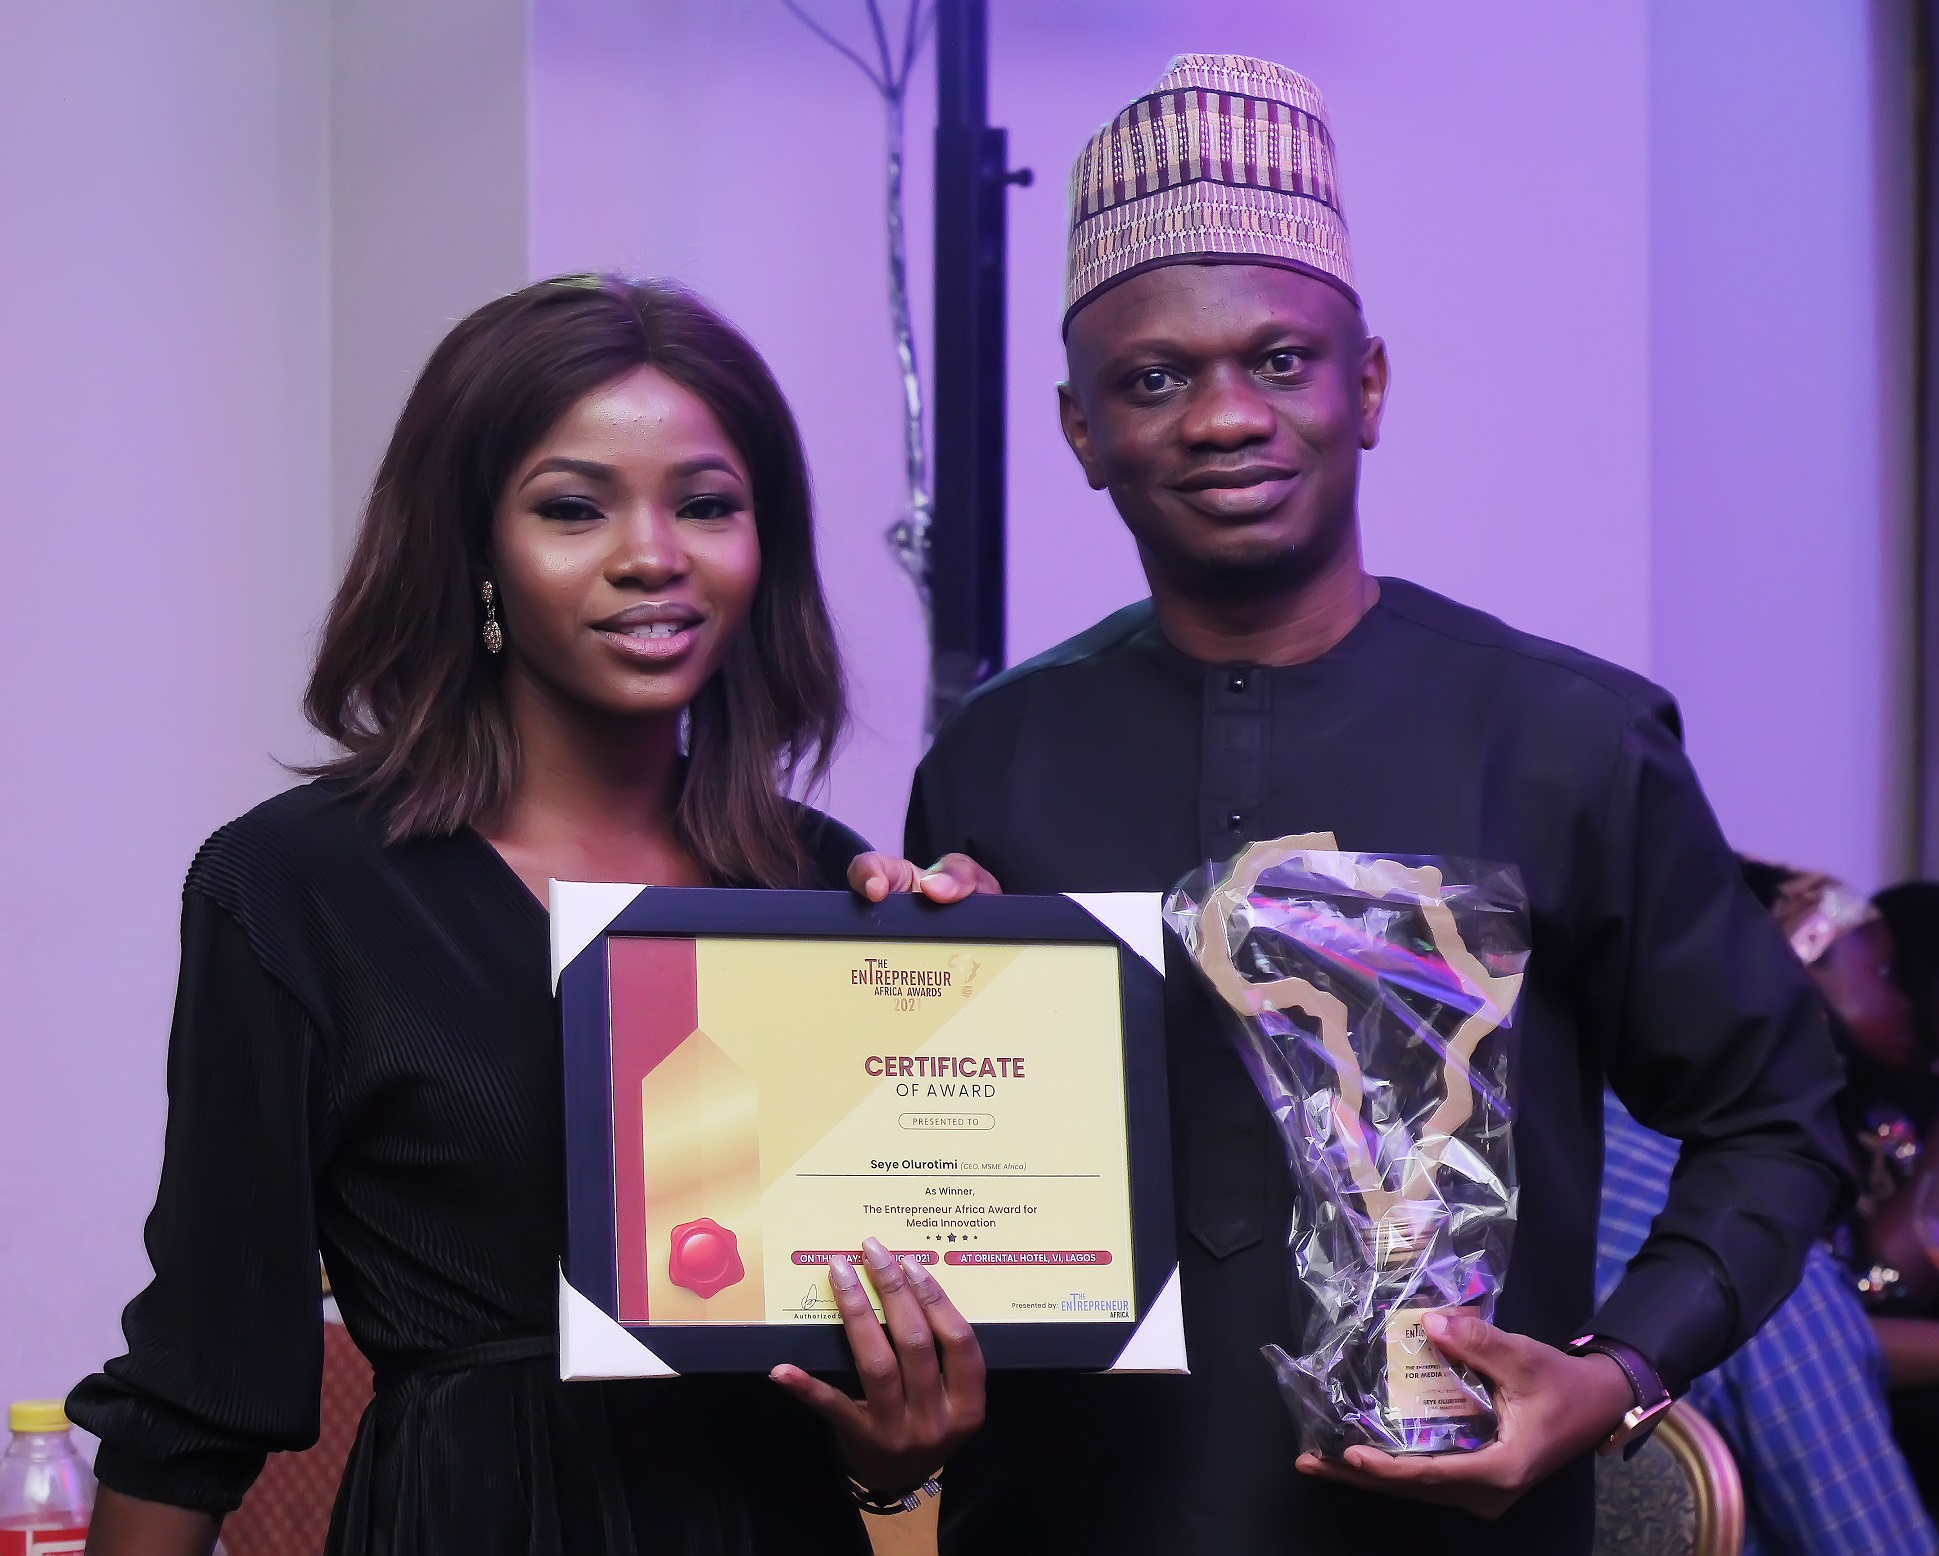 L-R Mercy Alao, Community Manager, MSME Africa and Seye Olurotimi, Founder, MSME Africa posing with the Entrepreneurs Africa Award for Media Innovation 2021